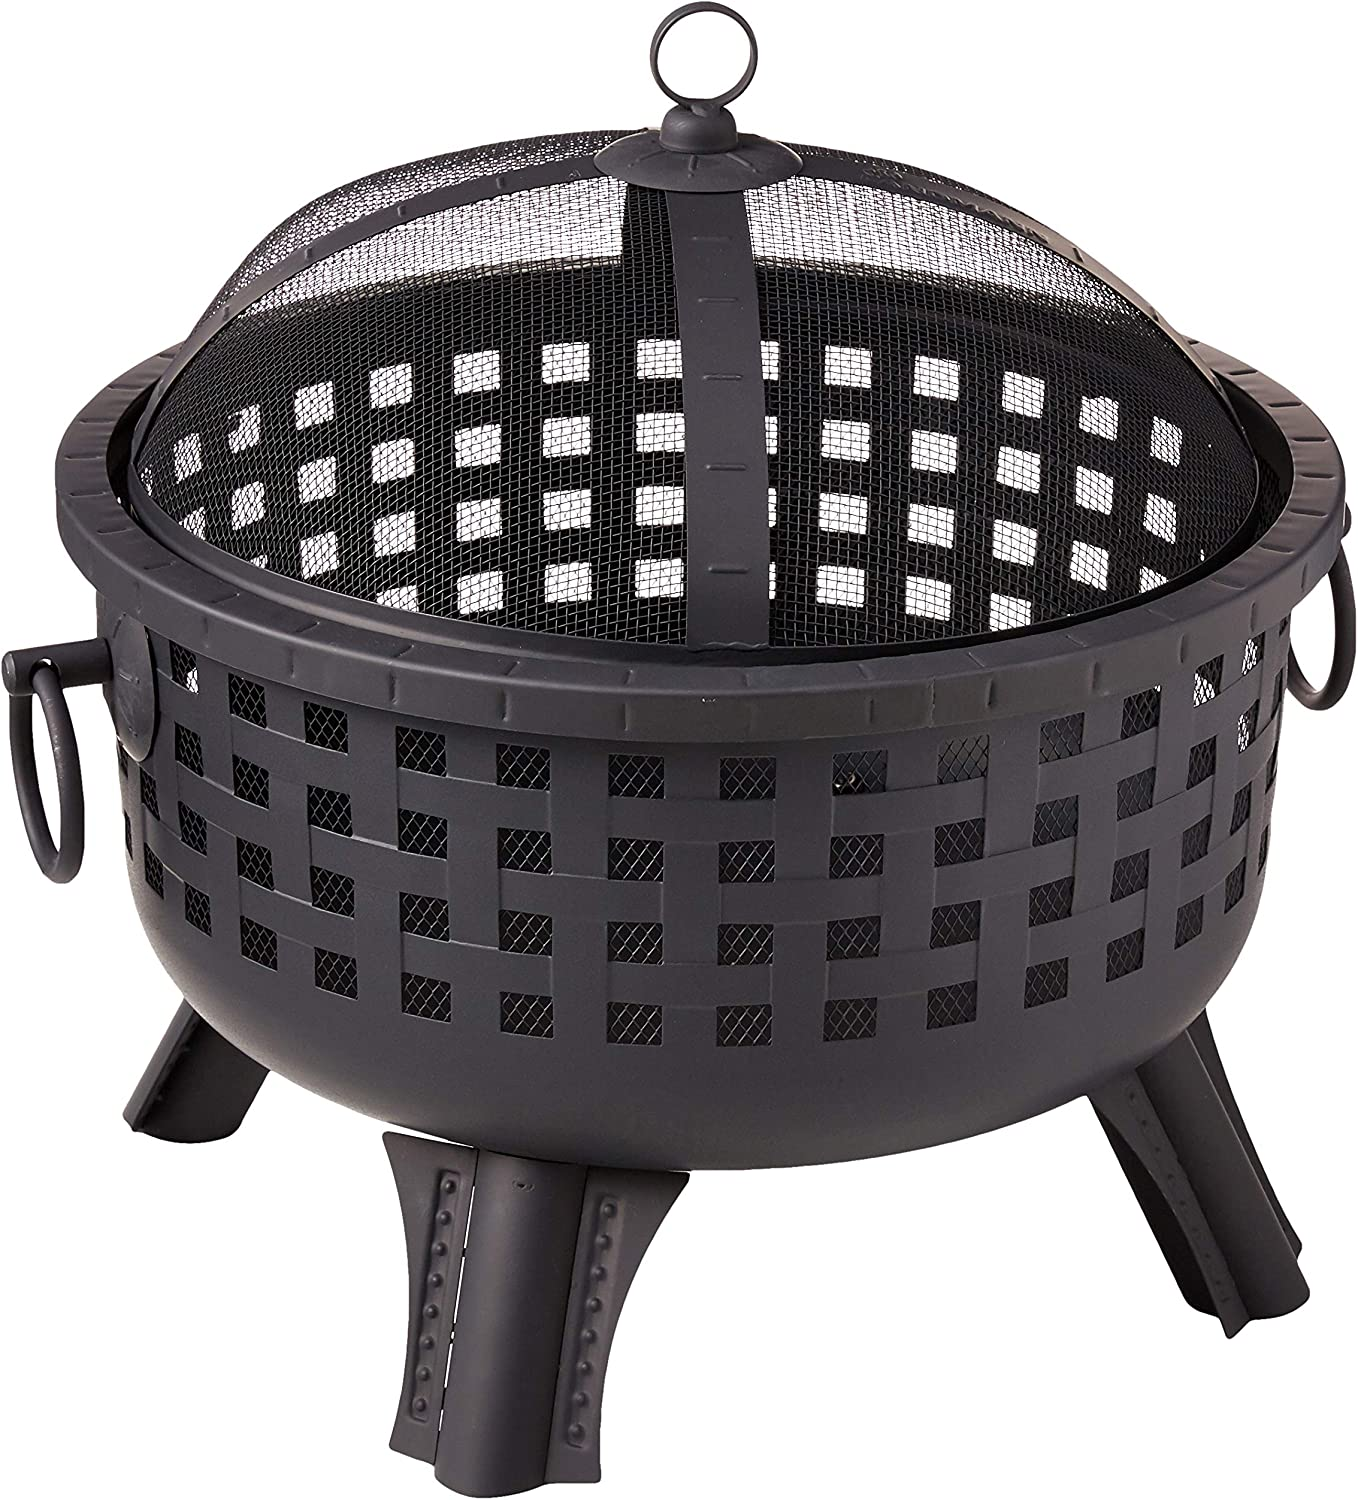 Landmann 26364 23-1 2-Inch Savannah Garden Light Fire Pit, Black